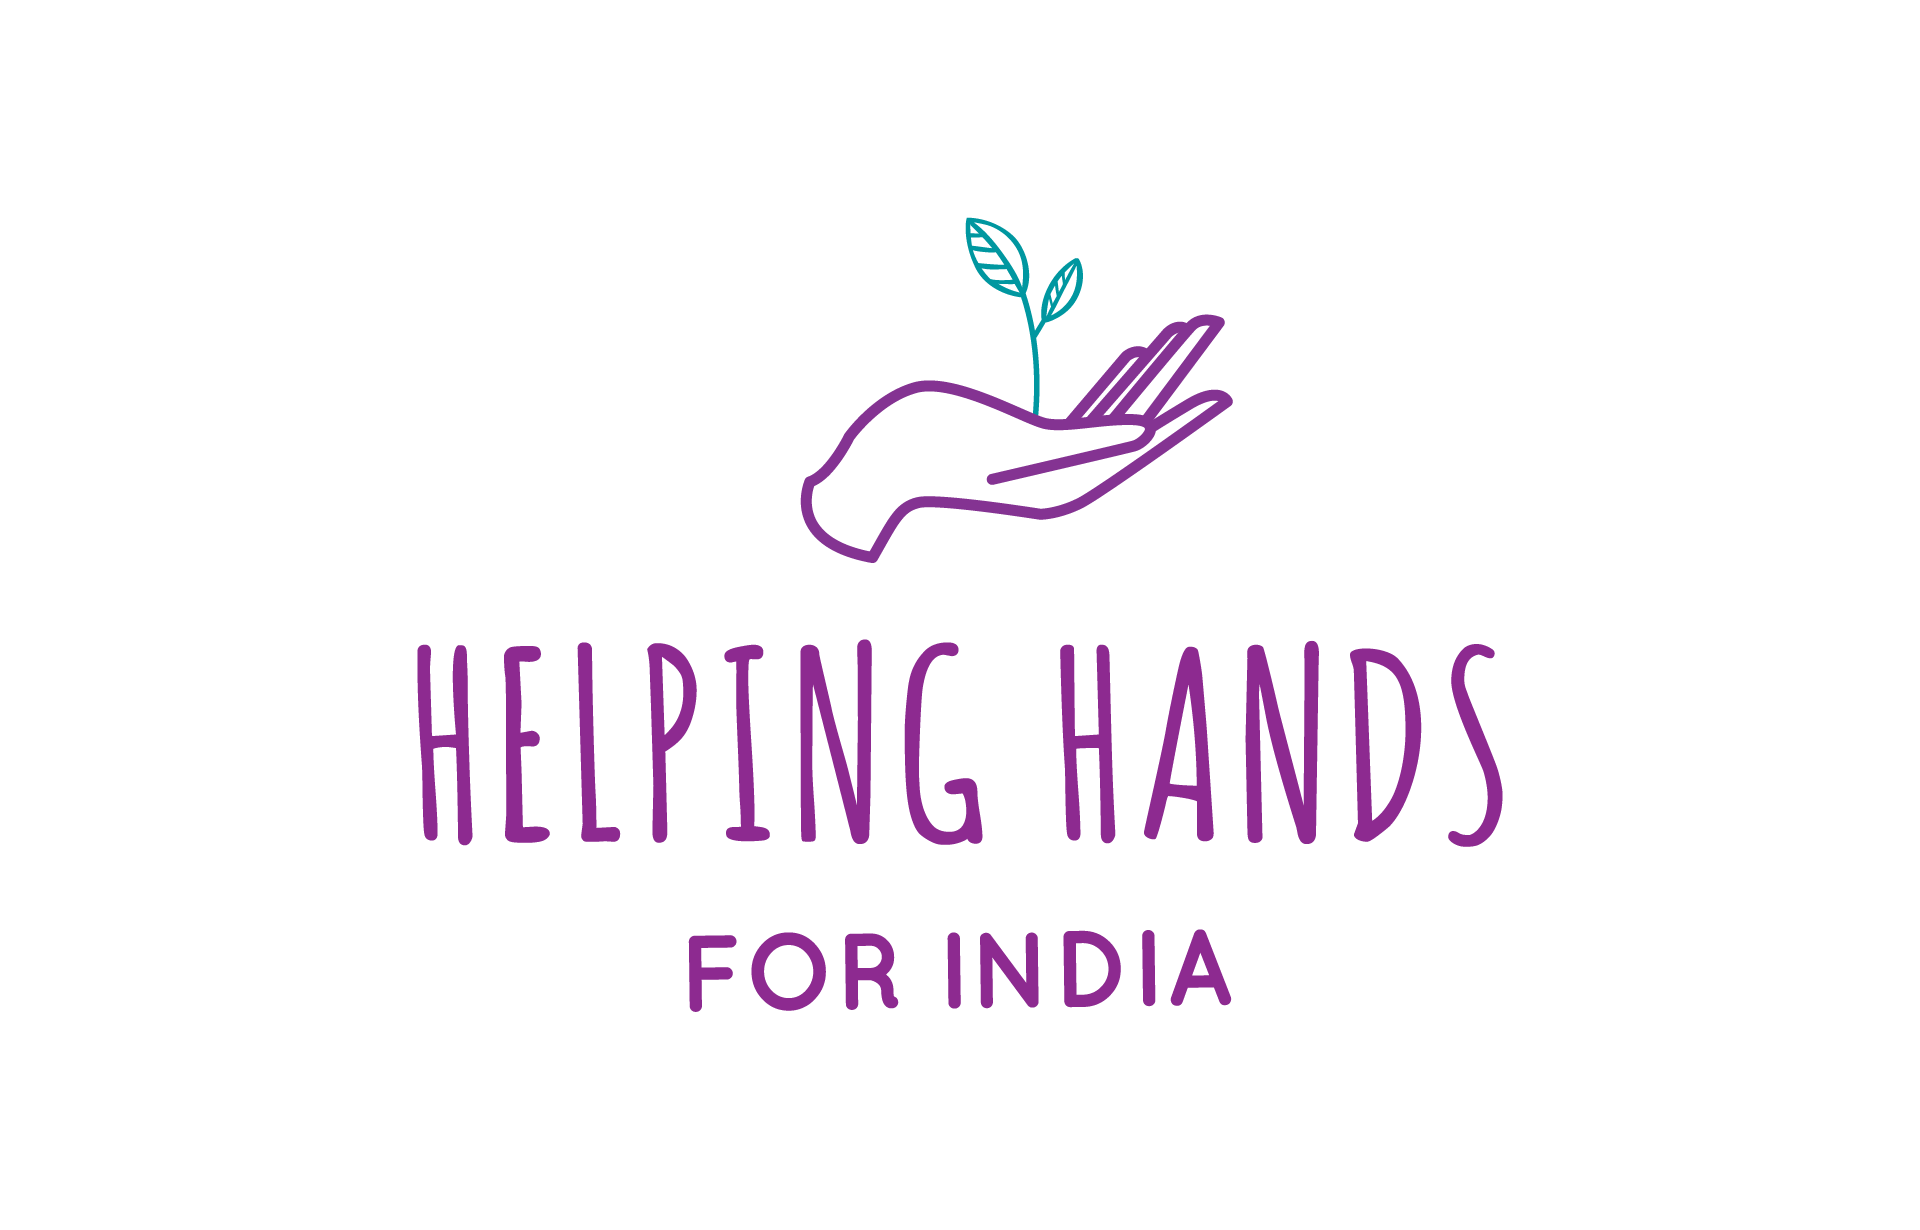 Helping Hands for India